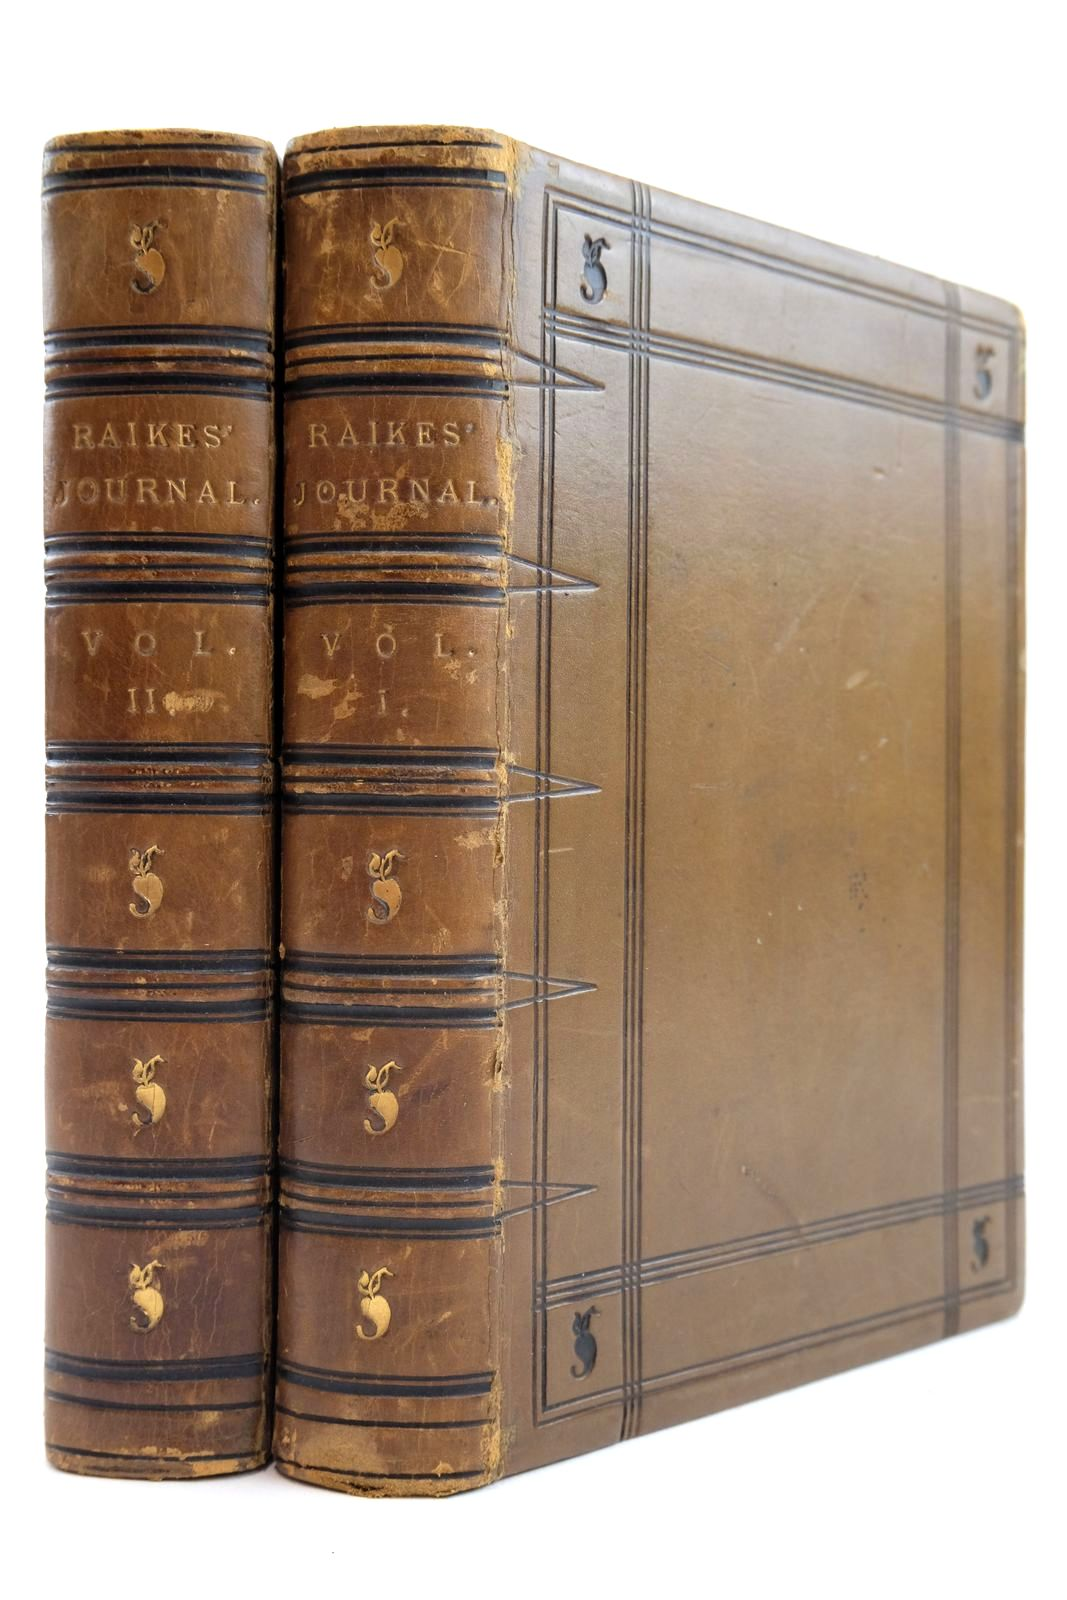 A Portion Of The Journal Kept By Thomas Raikes, Esq. From 1831 To 1847 (2 Volumes)